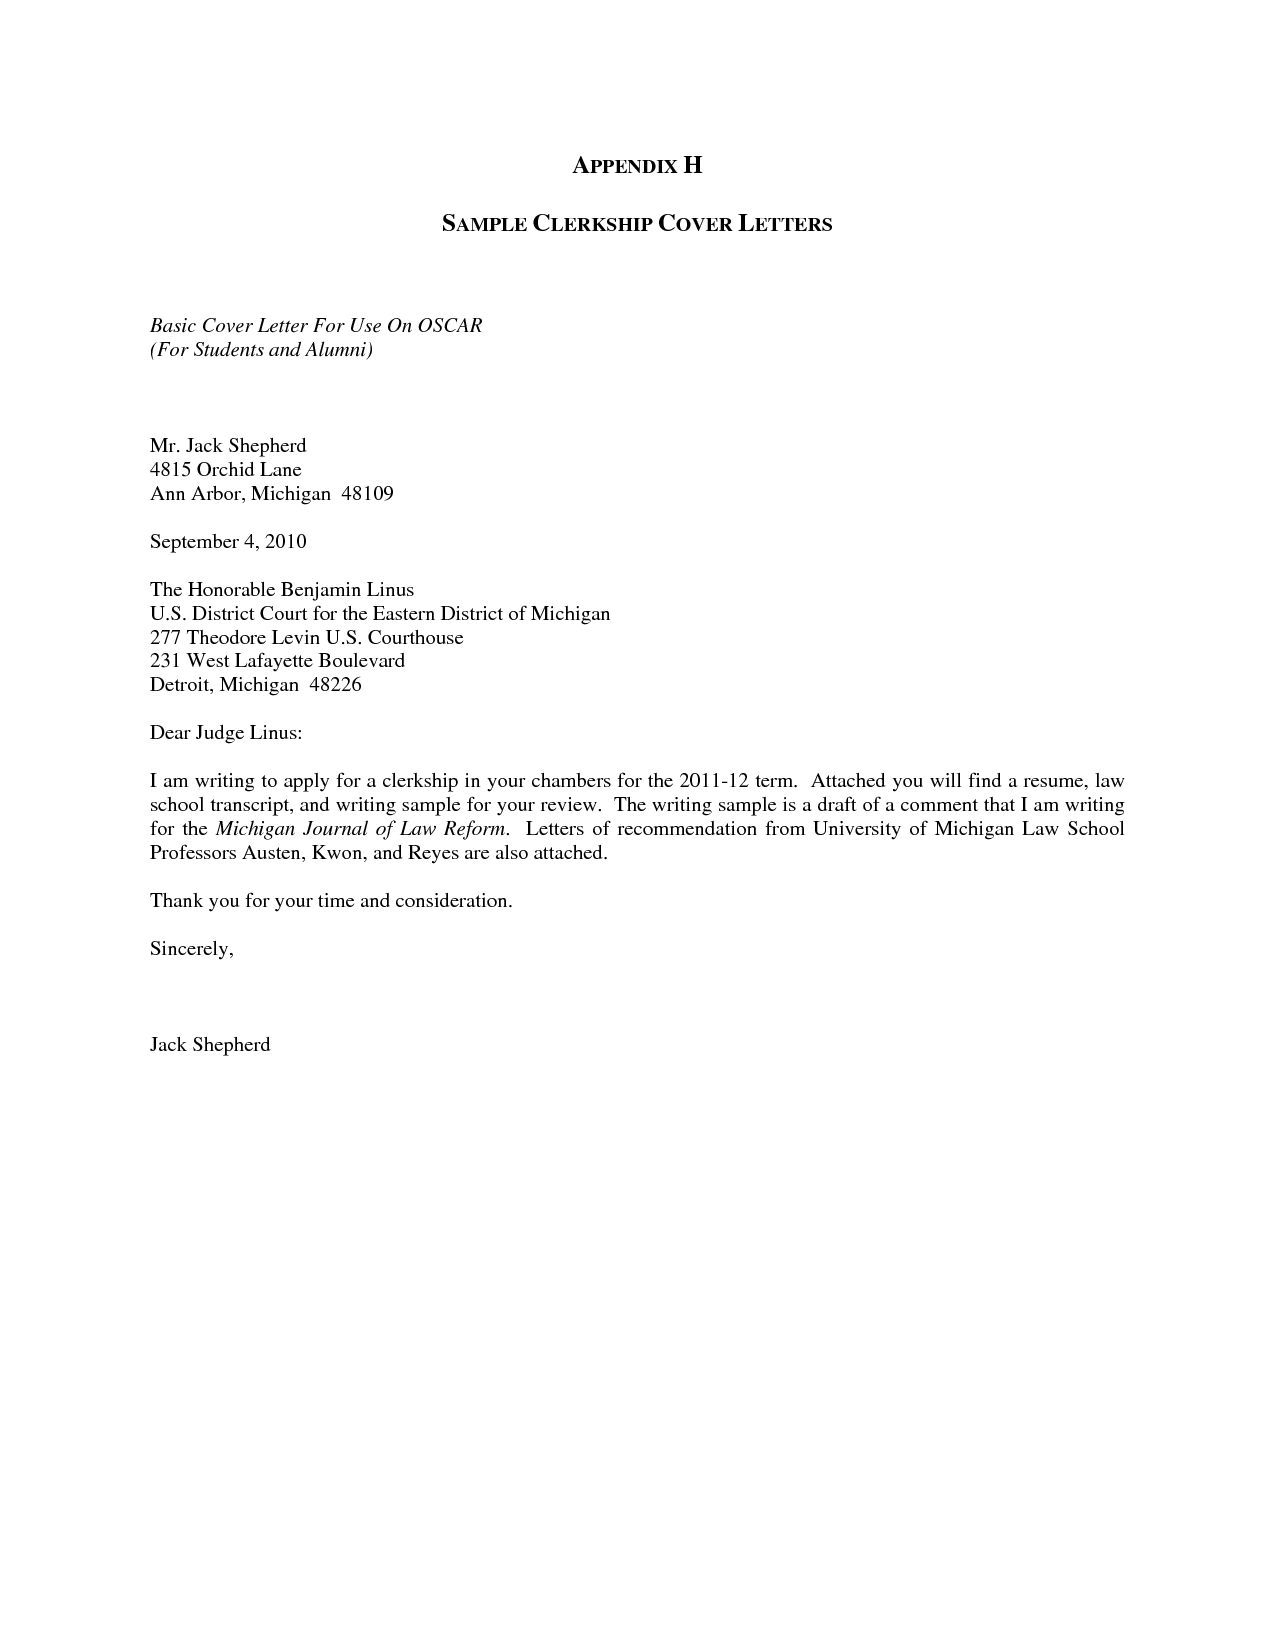 resumes and cover letters examples examples good cover letters for